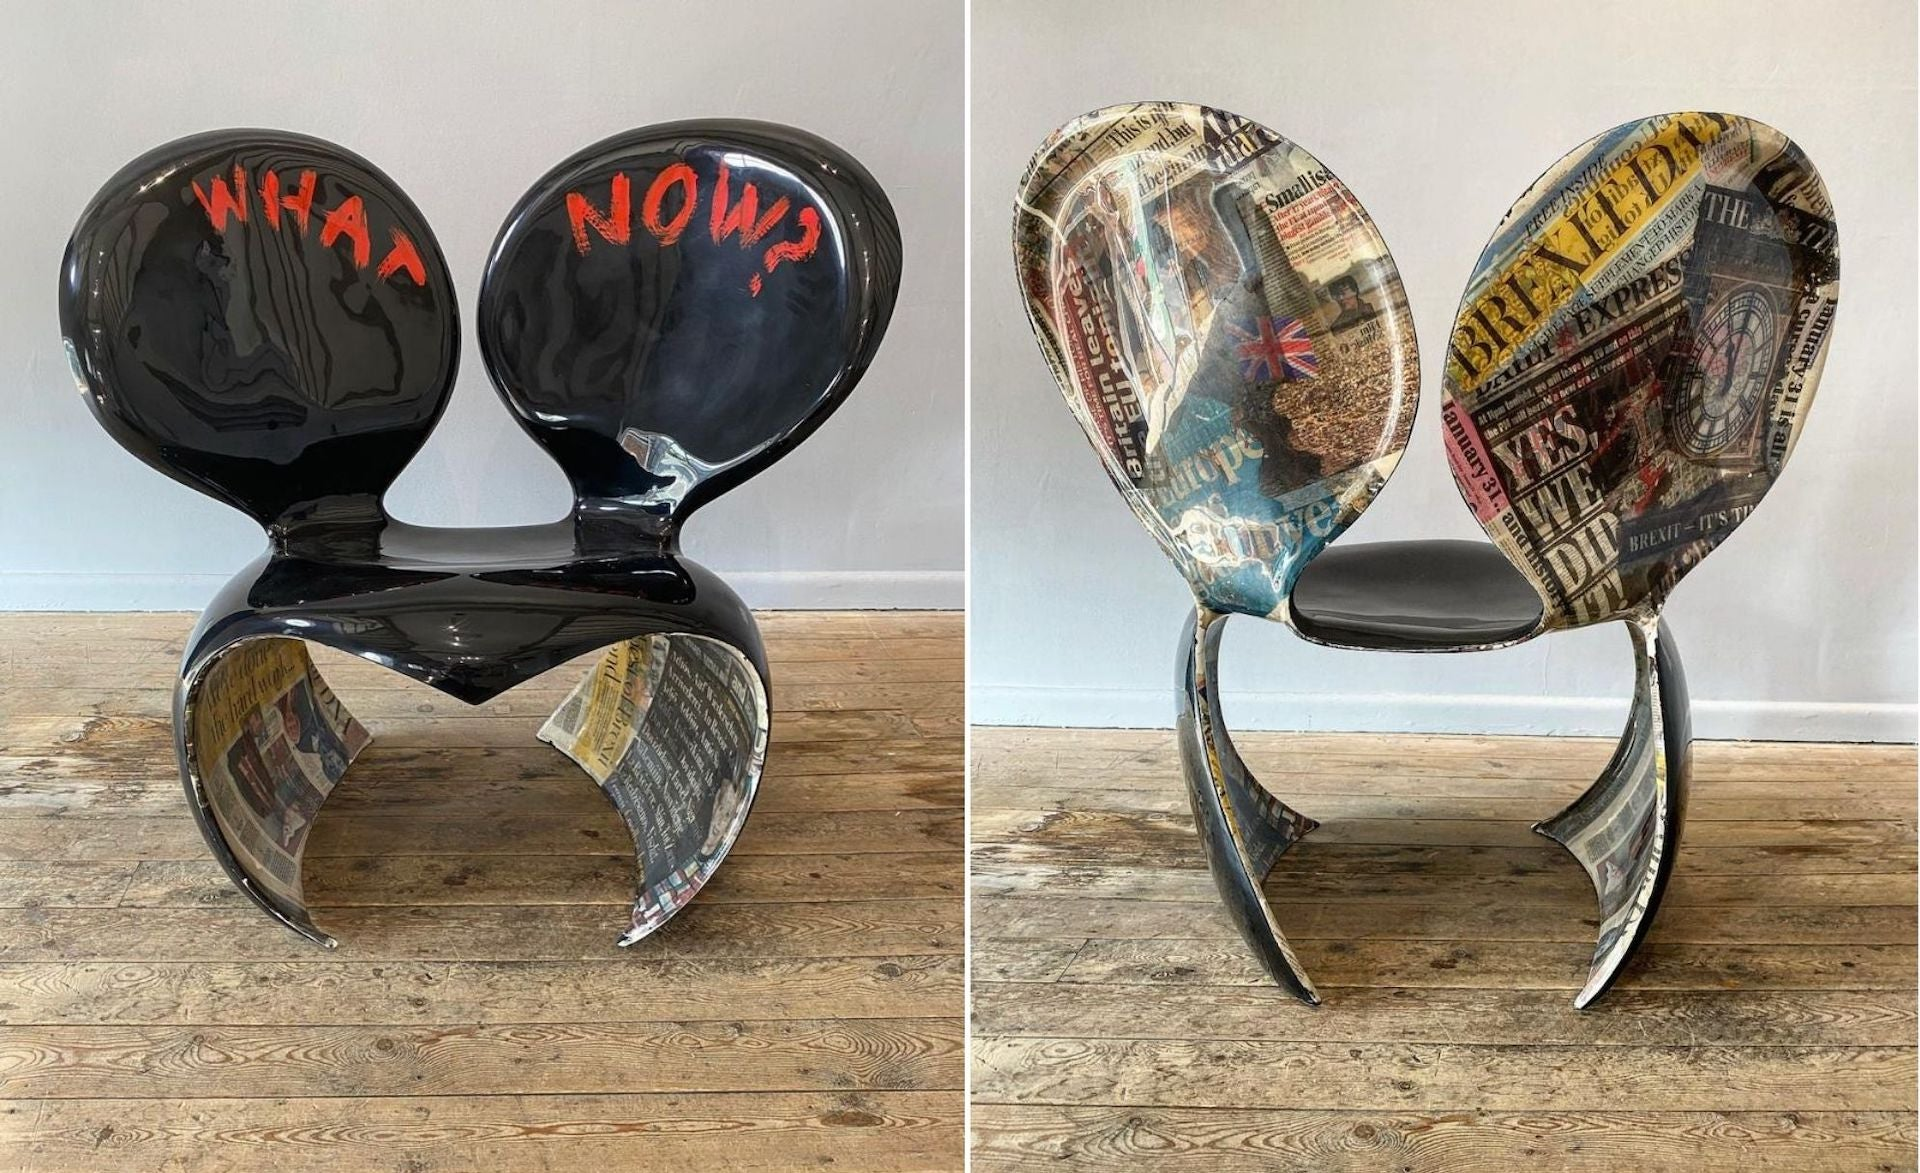 What Now (Brexit Chair) by Ron Arad, 2020, on view at Newlands House Gallery. Photo © Newlands House Gallery